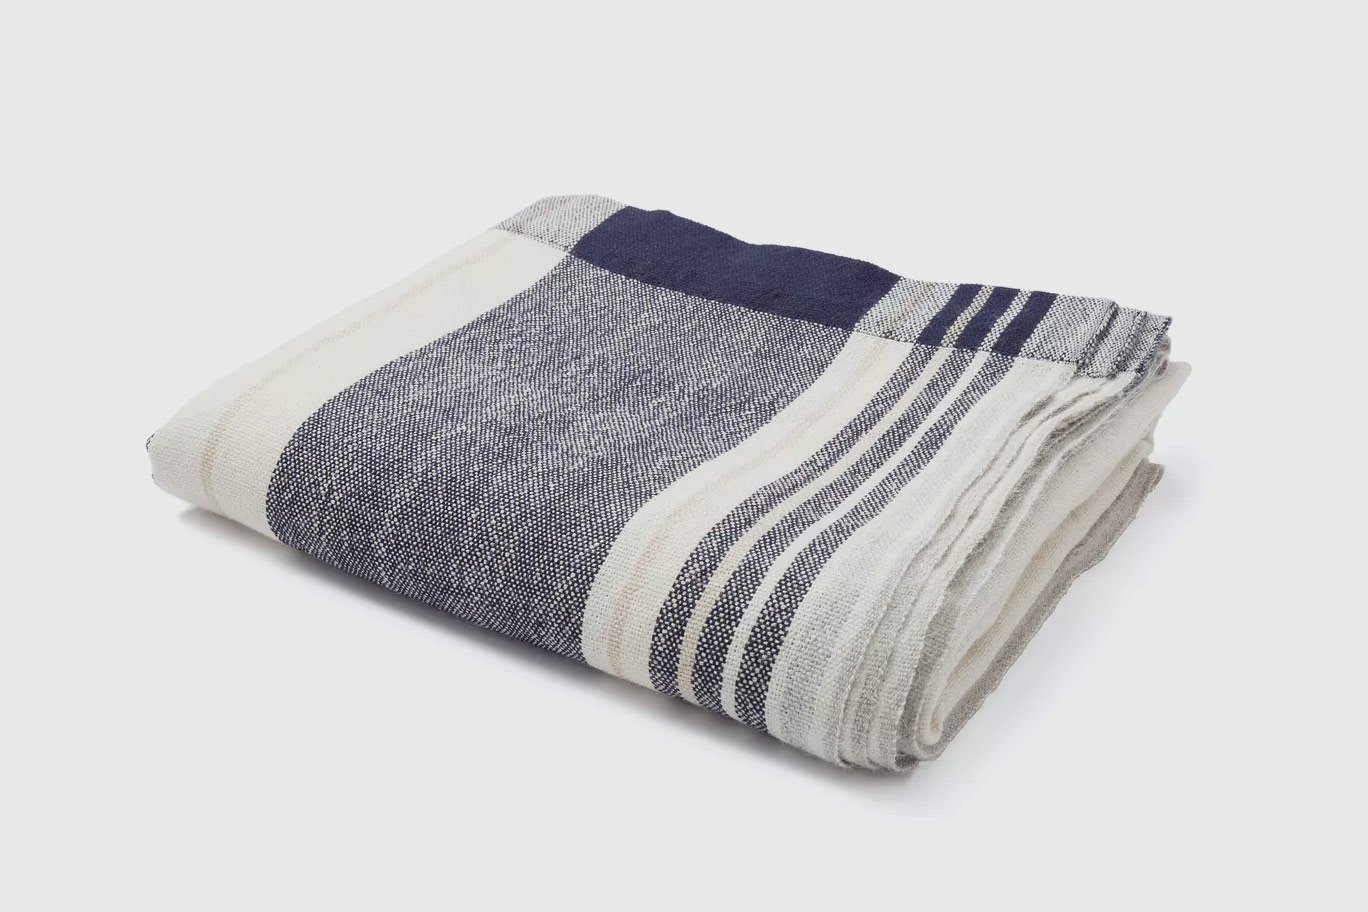 The Citizenry Peruvian Del Campo Alpaca Throw